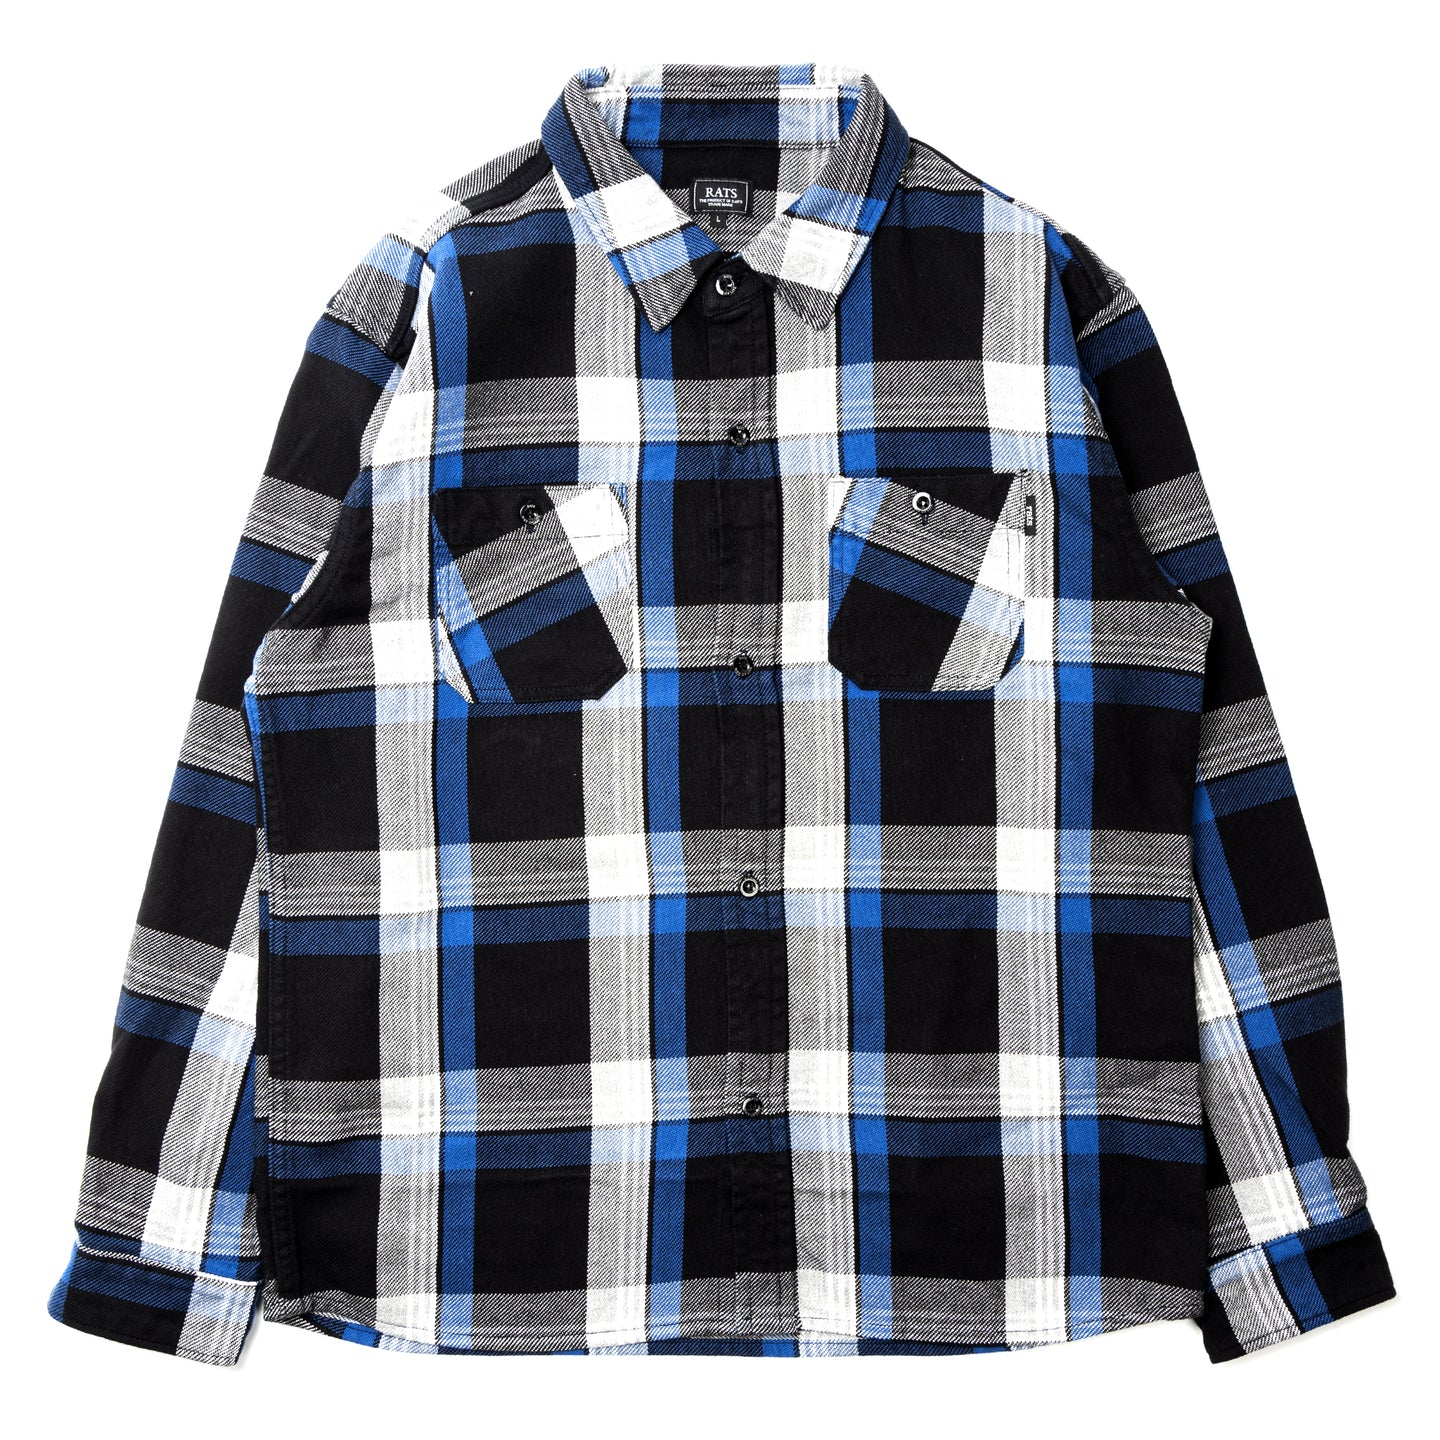 Rats Cotton Check Shirt Black Blue